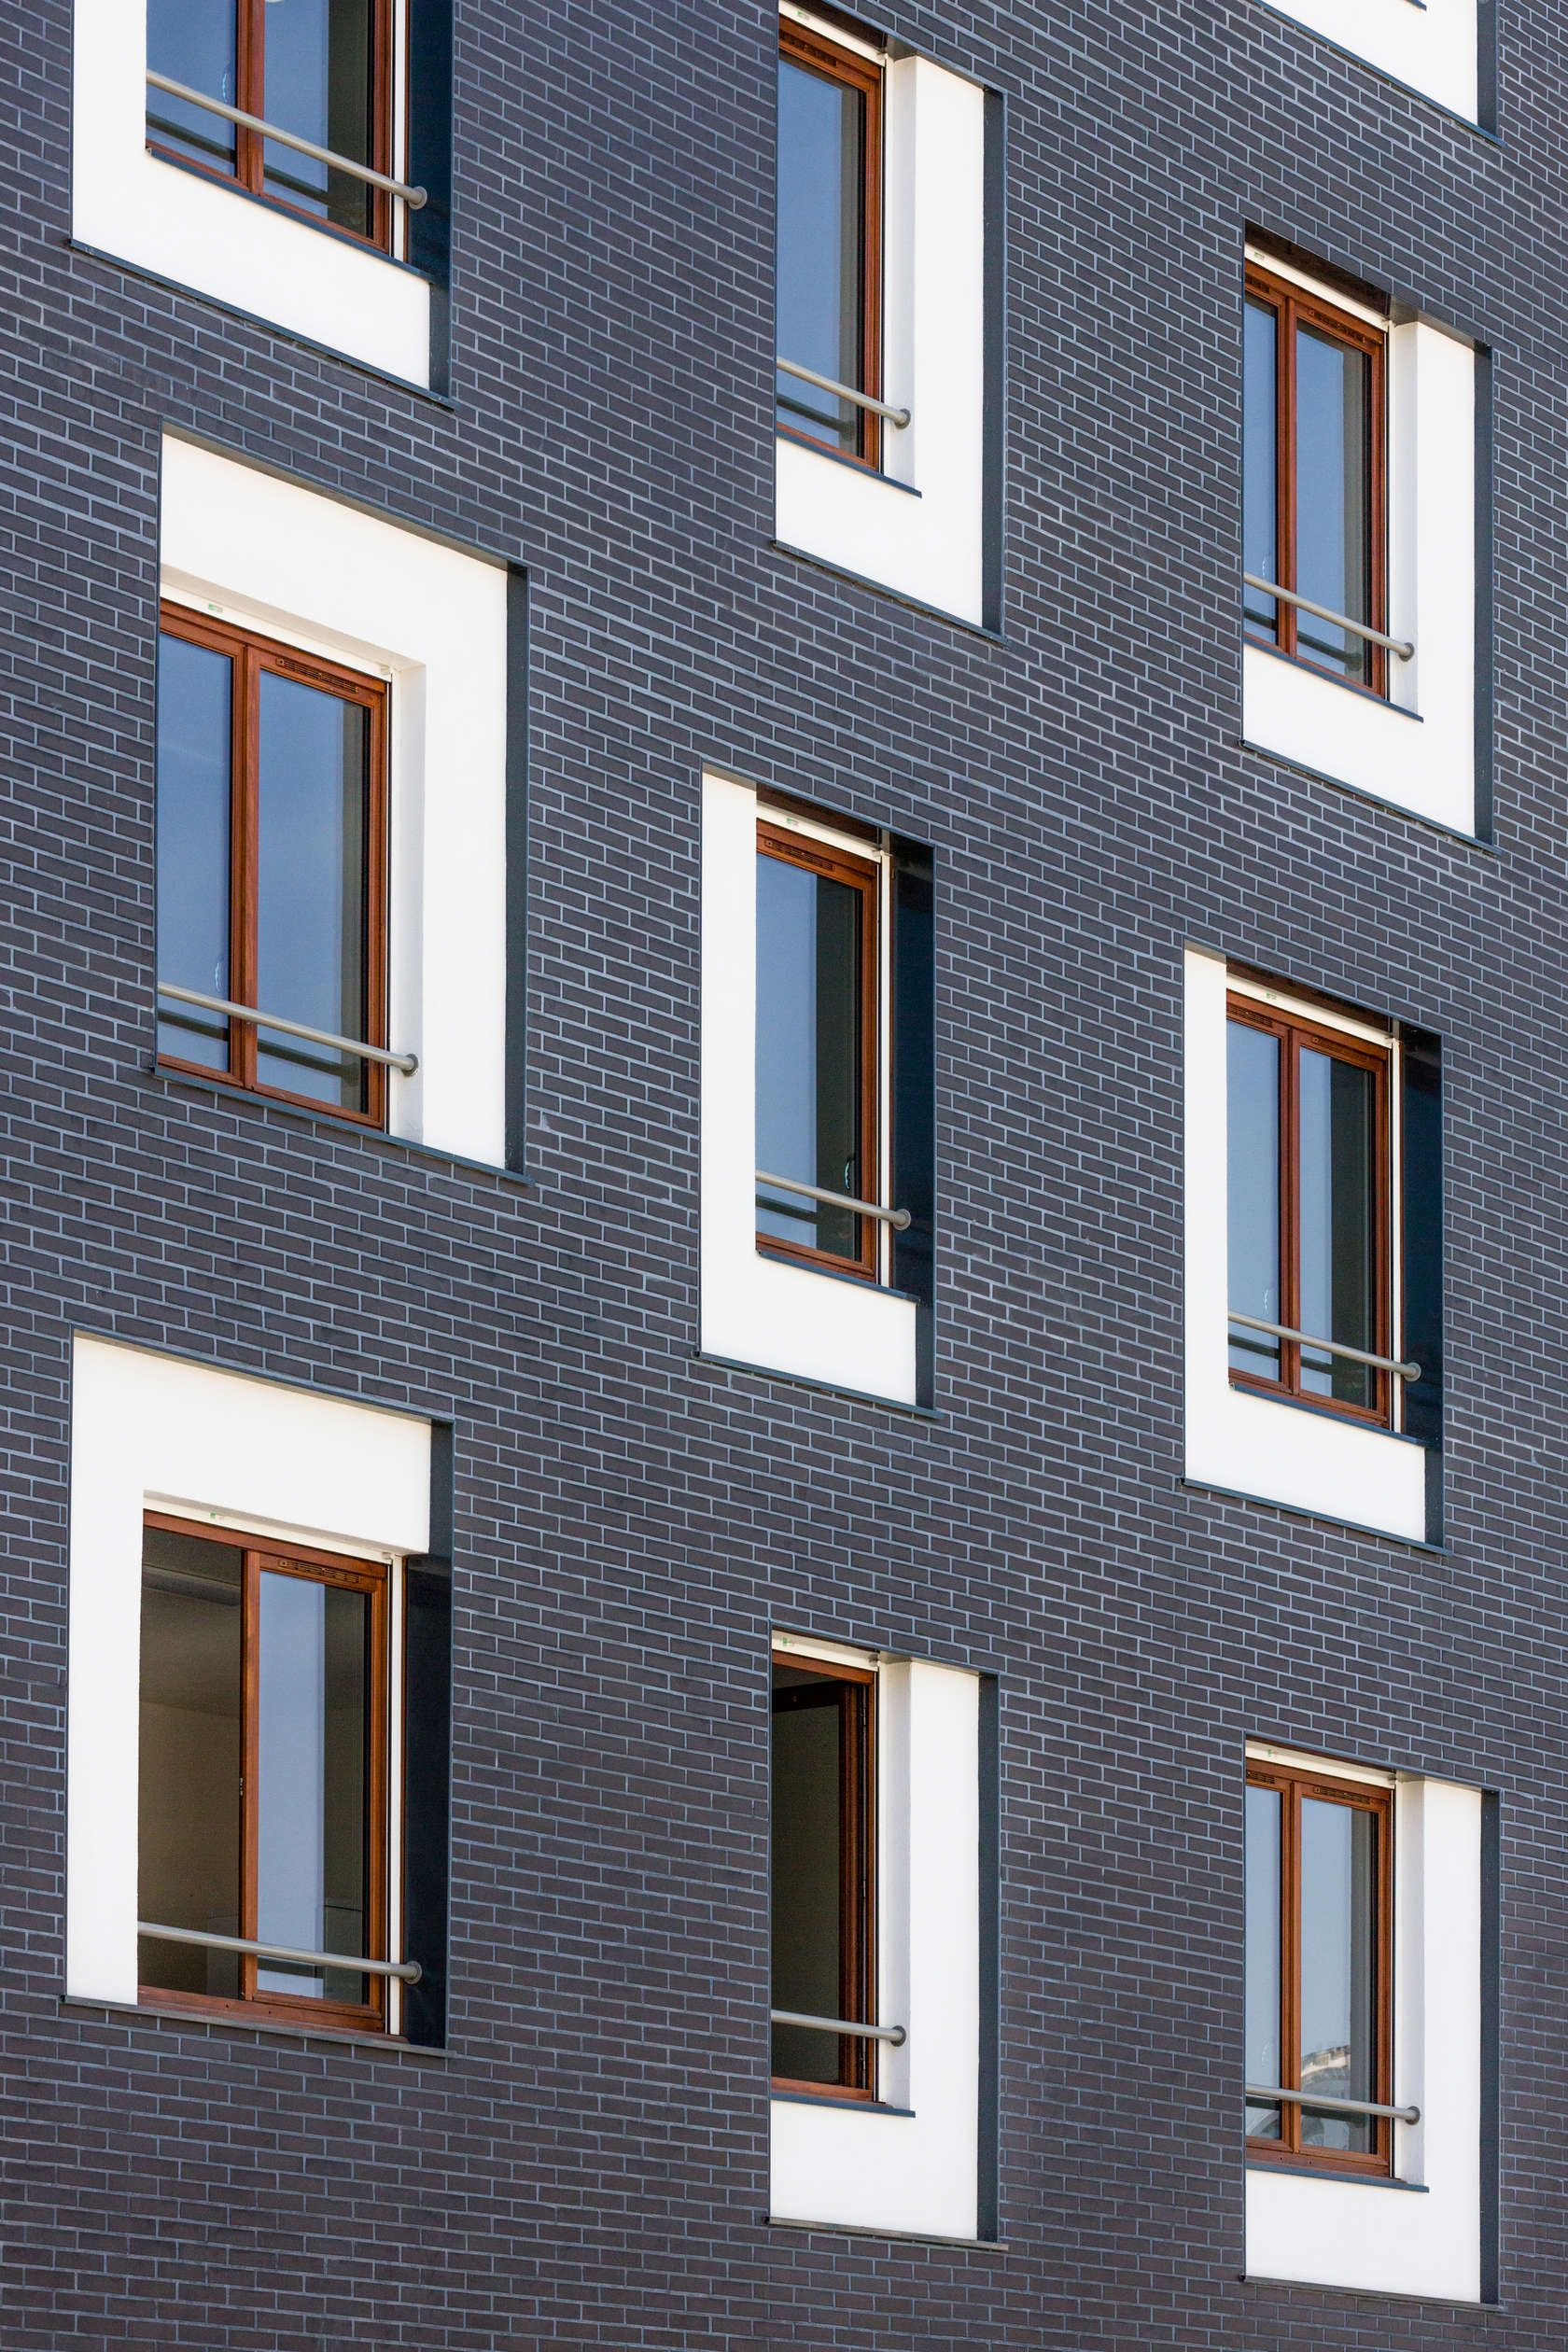 Social housing exterior facade brick white window detail for Building window design